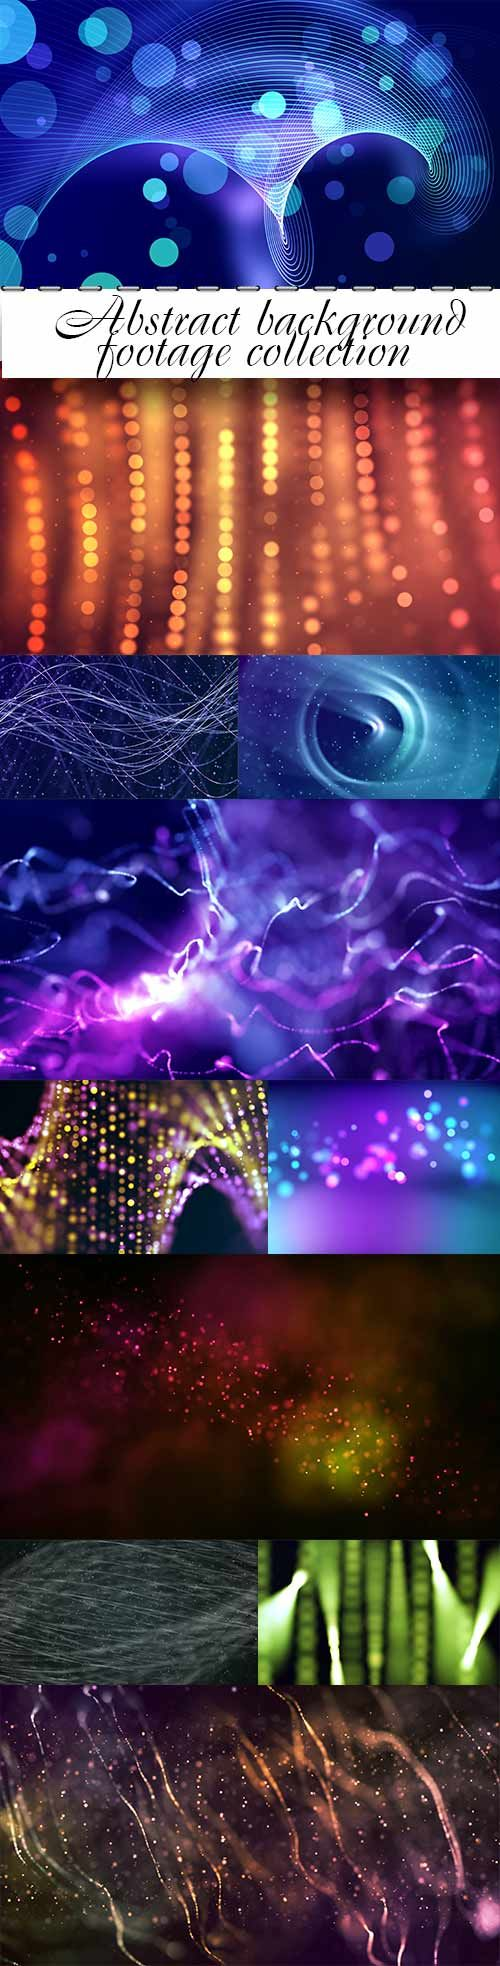 Abstract background footage collection